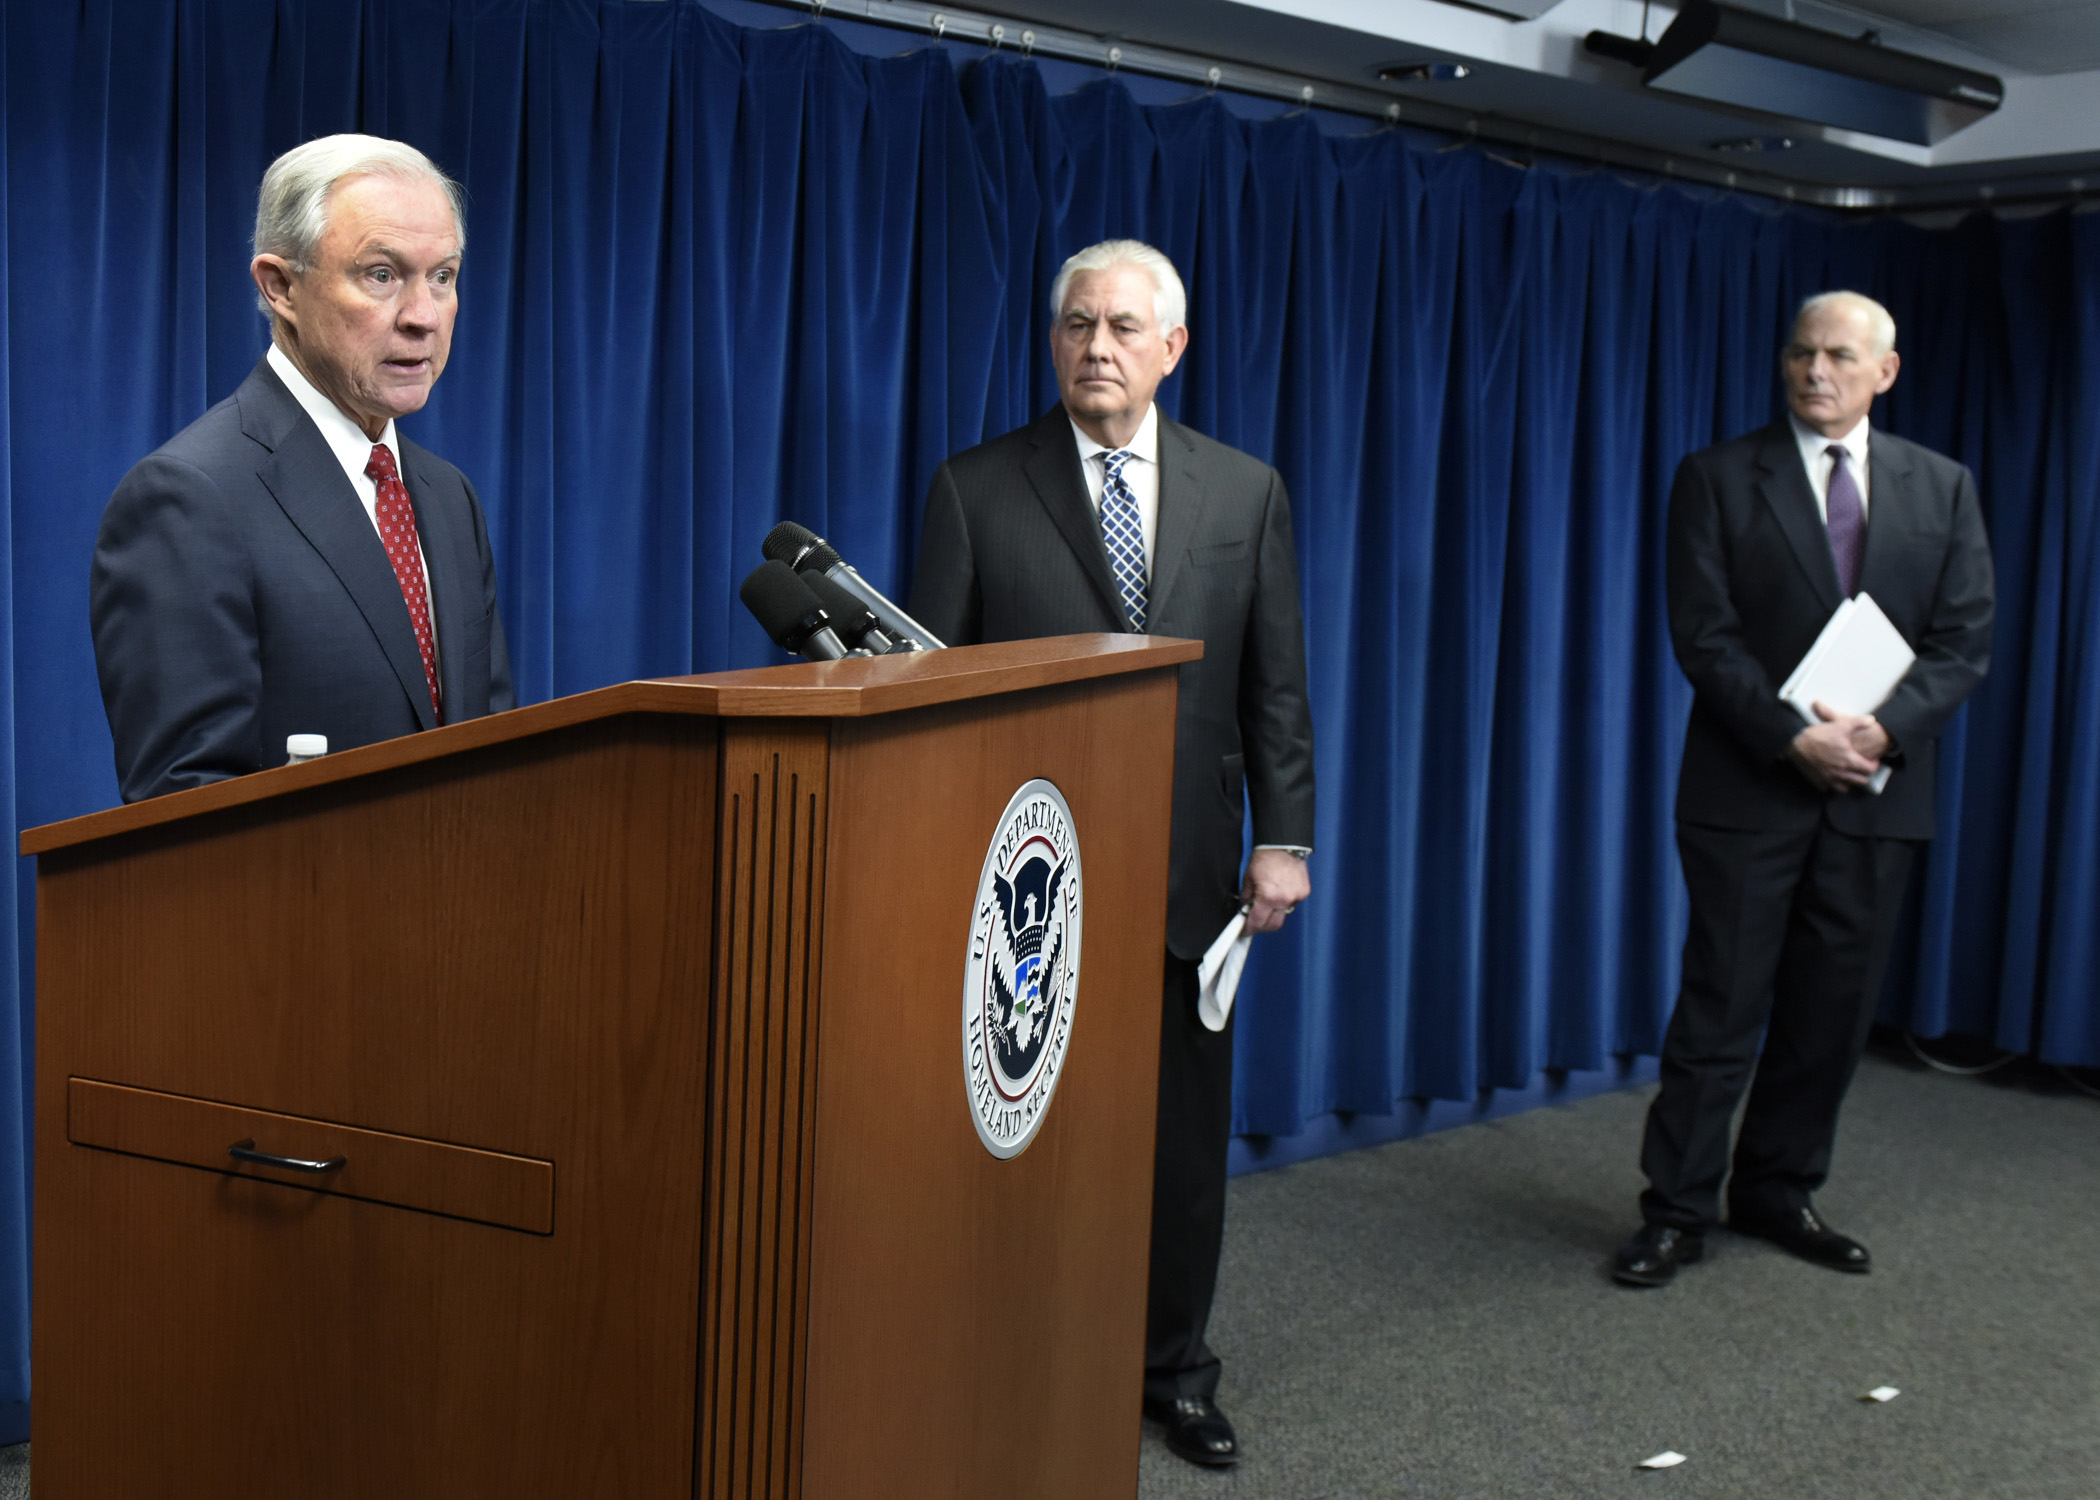 Attorney General Jeff Sessions stands behind podium at a press conference. Secretary of State Rex Tillerson and Secretary of Homeland Security John Kelly are looking towards him from the side.